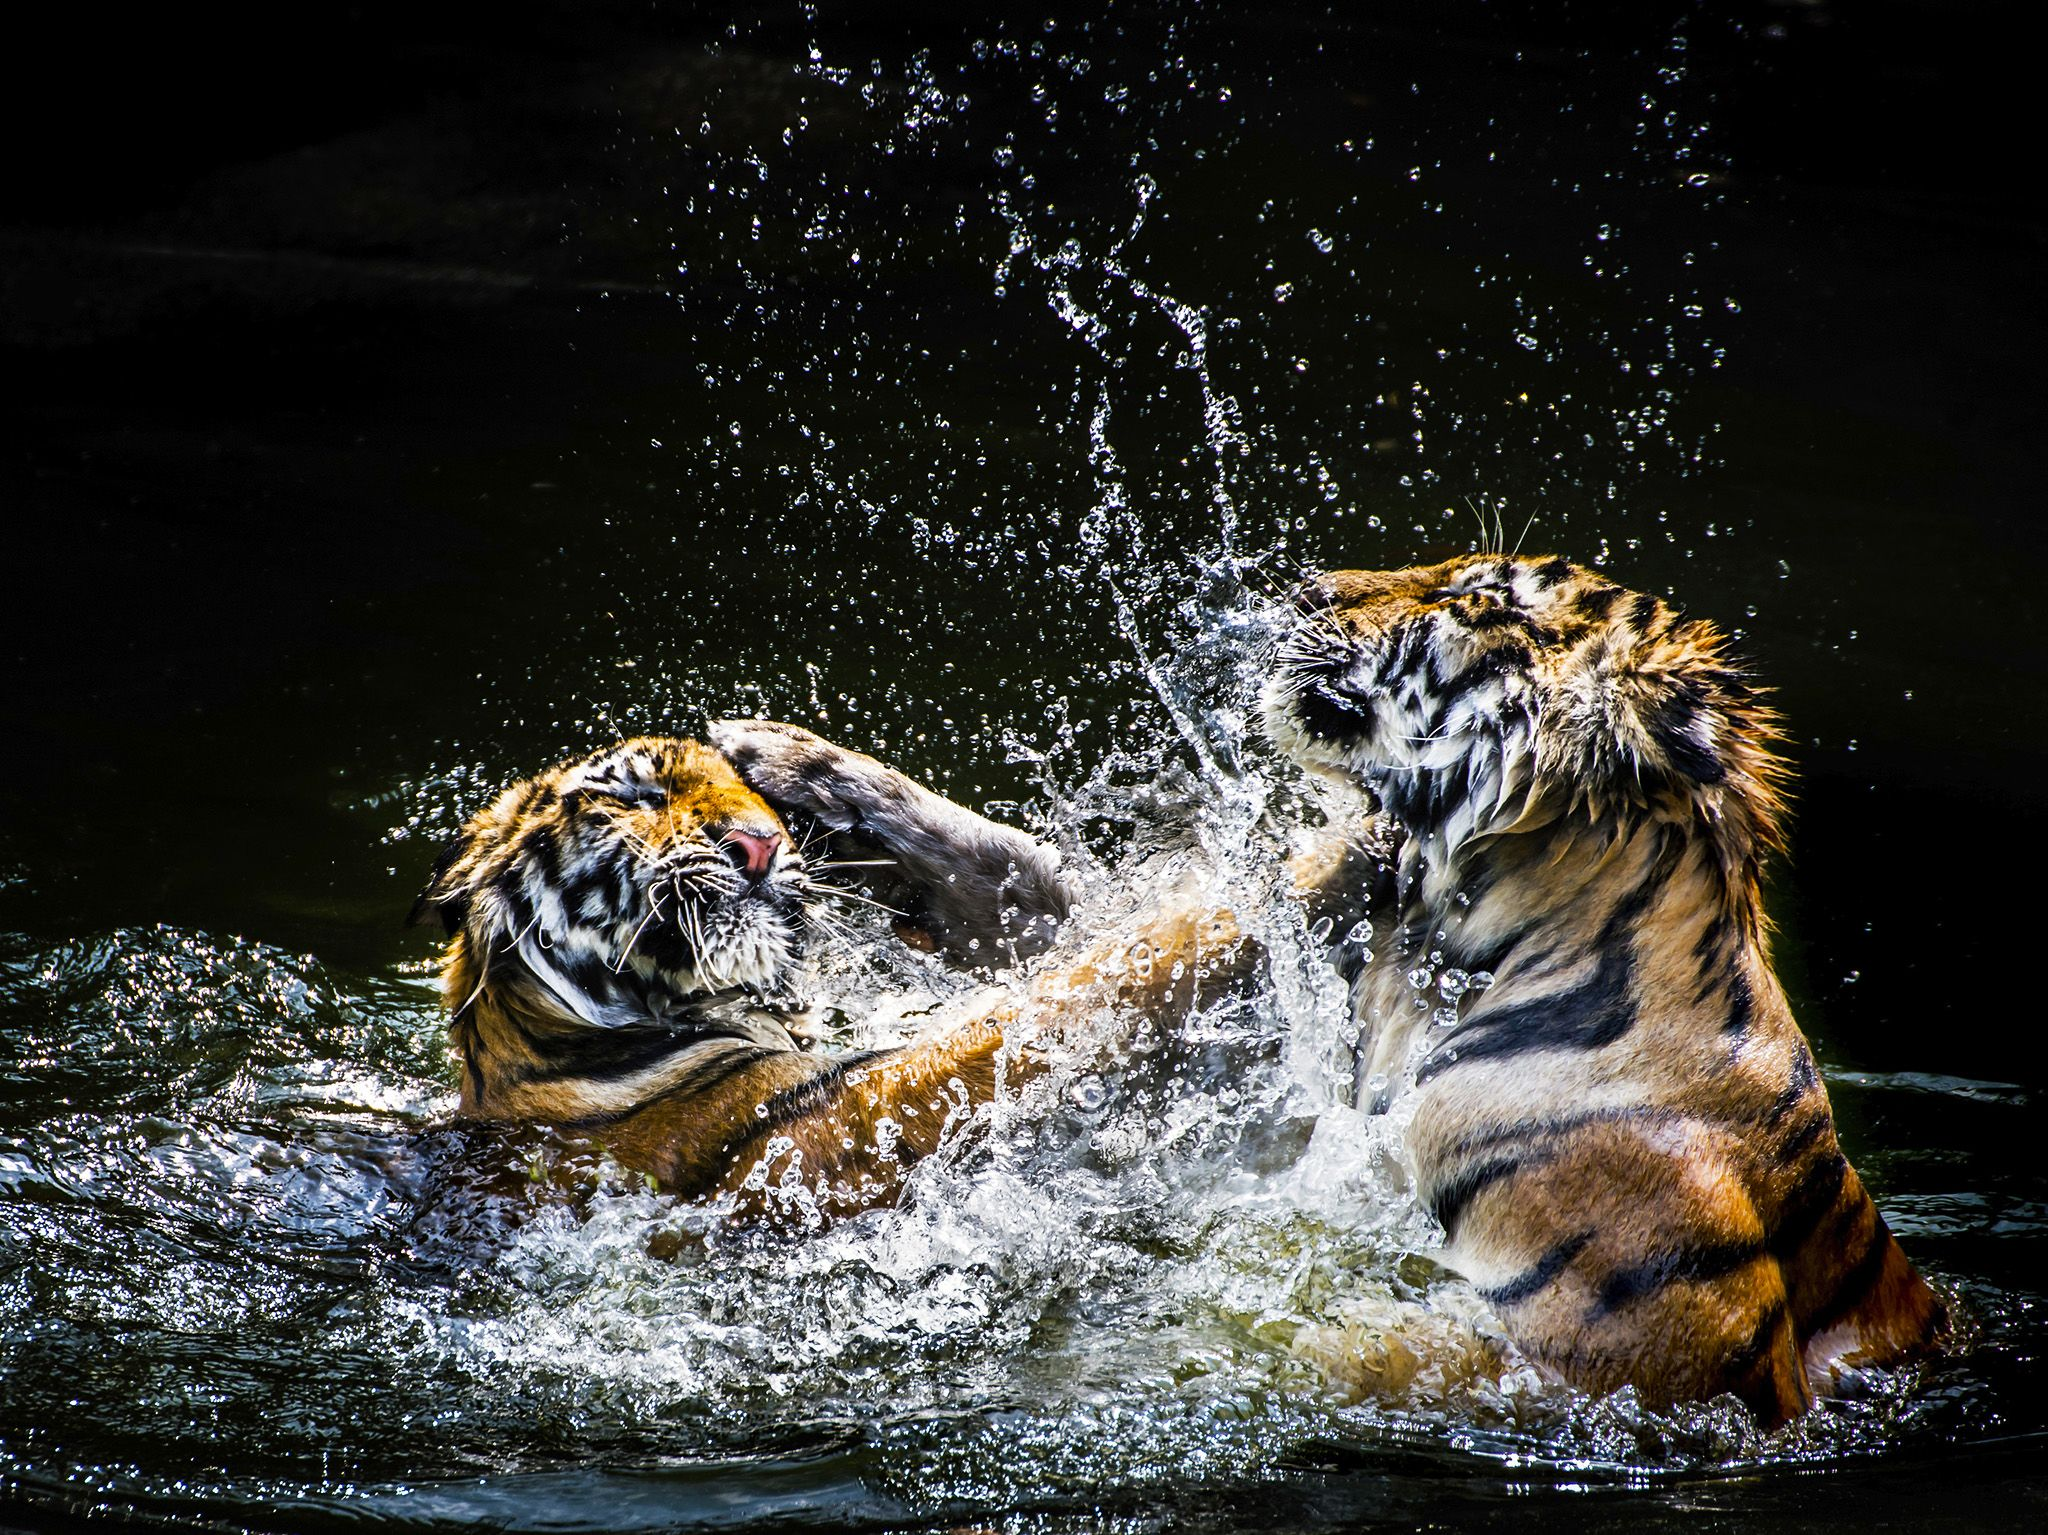 Tigers wrestle in the water.  Tigers usually live 8 to 10 years in the wild. This image is from... [Foto del giorno - August 2018]